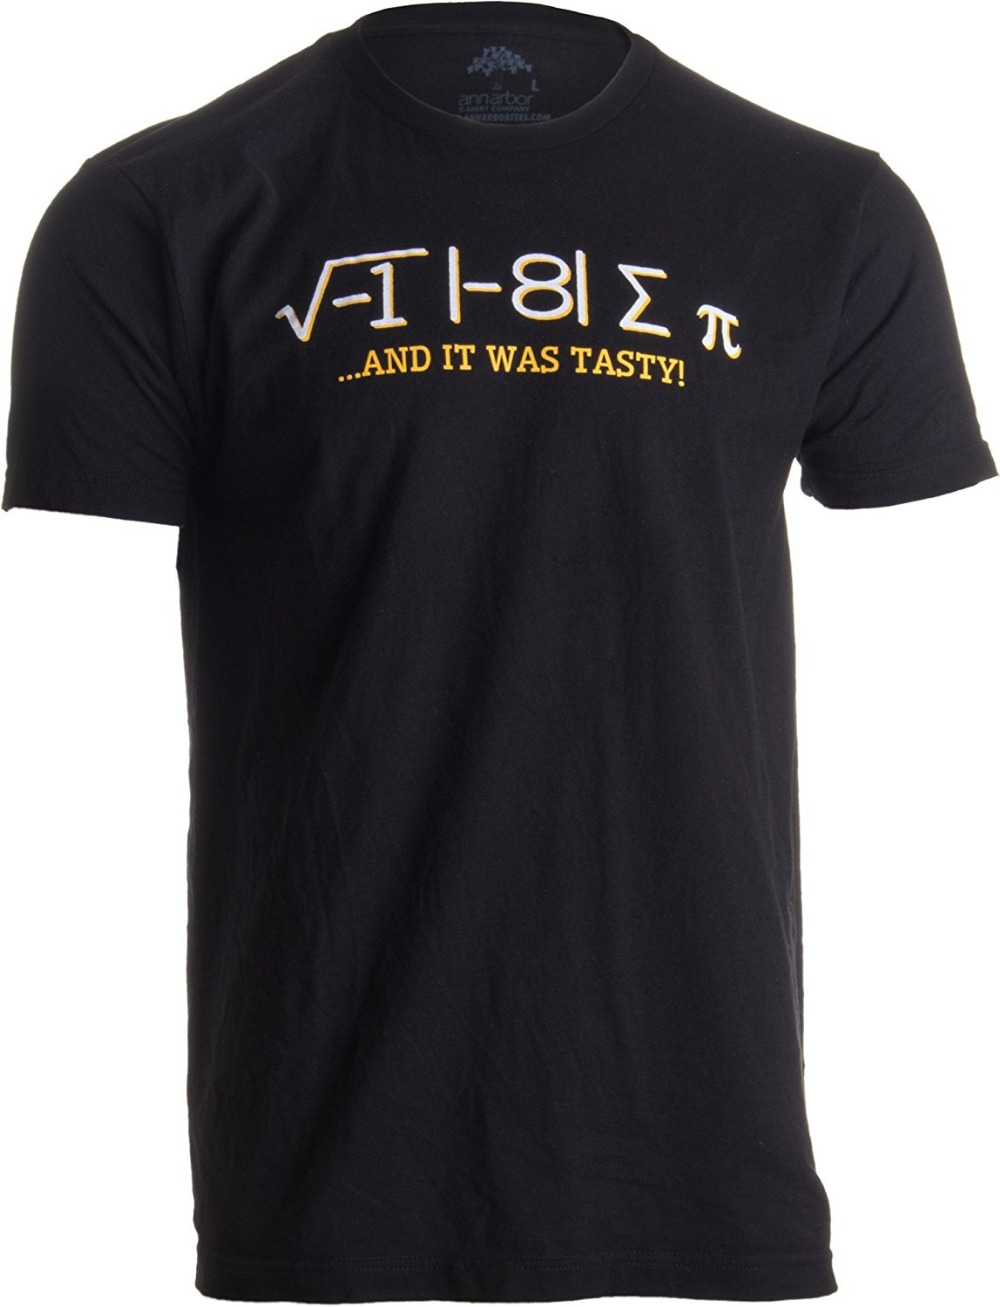 2018 New short-sleeved round collar I Ate Some Pi, and it was Tasty  Funny Delicious Math Teacher Humor Pun T-shirt 100% Cotto